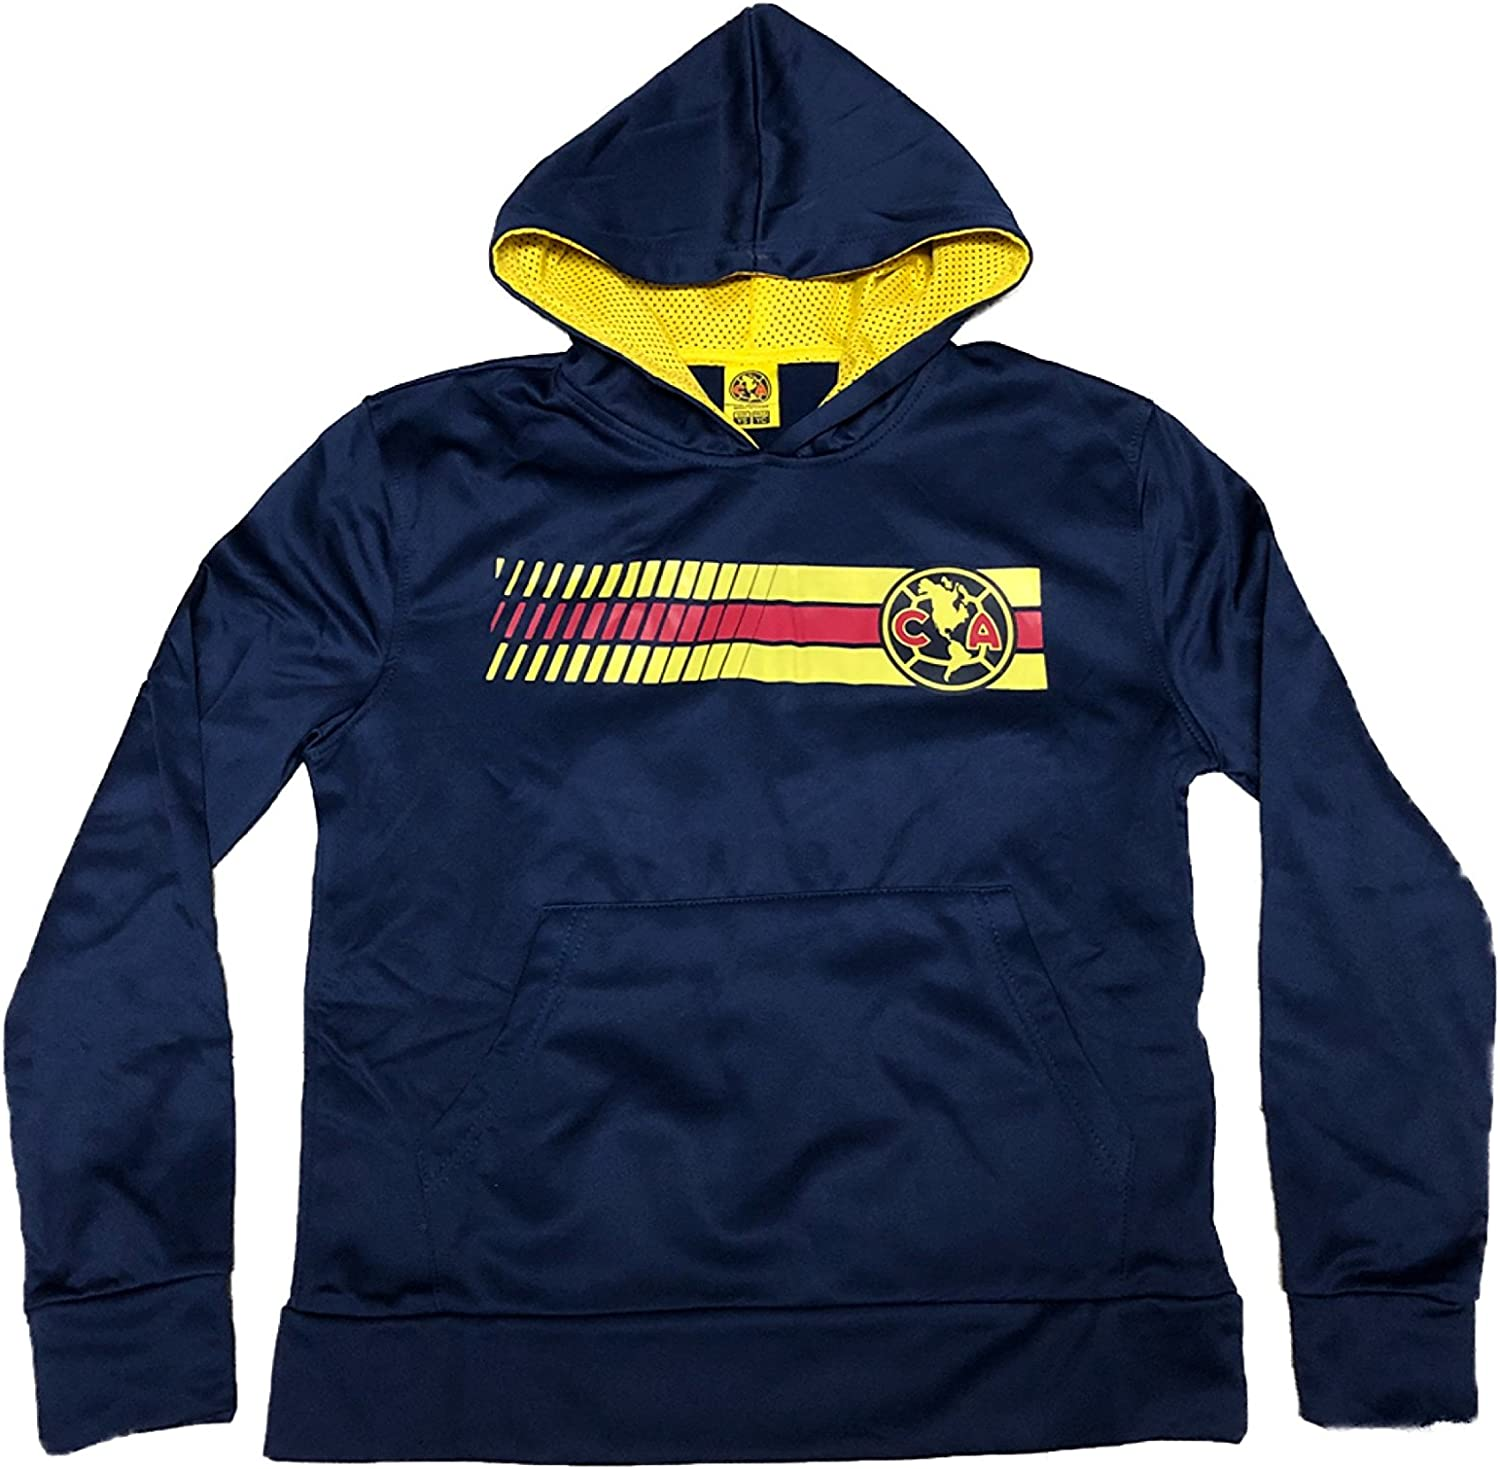 Club America Youth Navy Max 78% OFF Product Sweater Official Hoodie Elegant